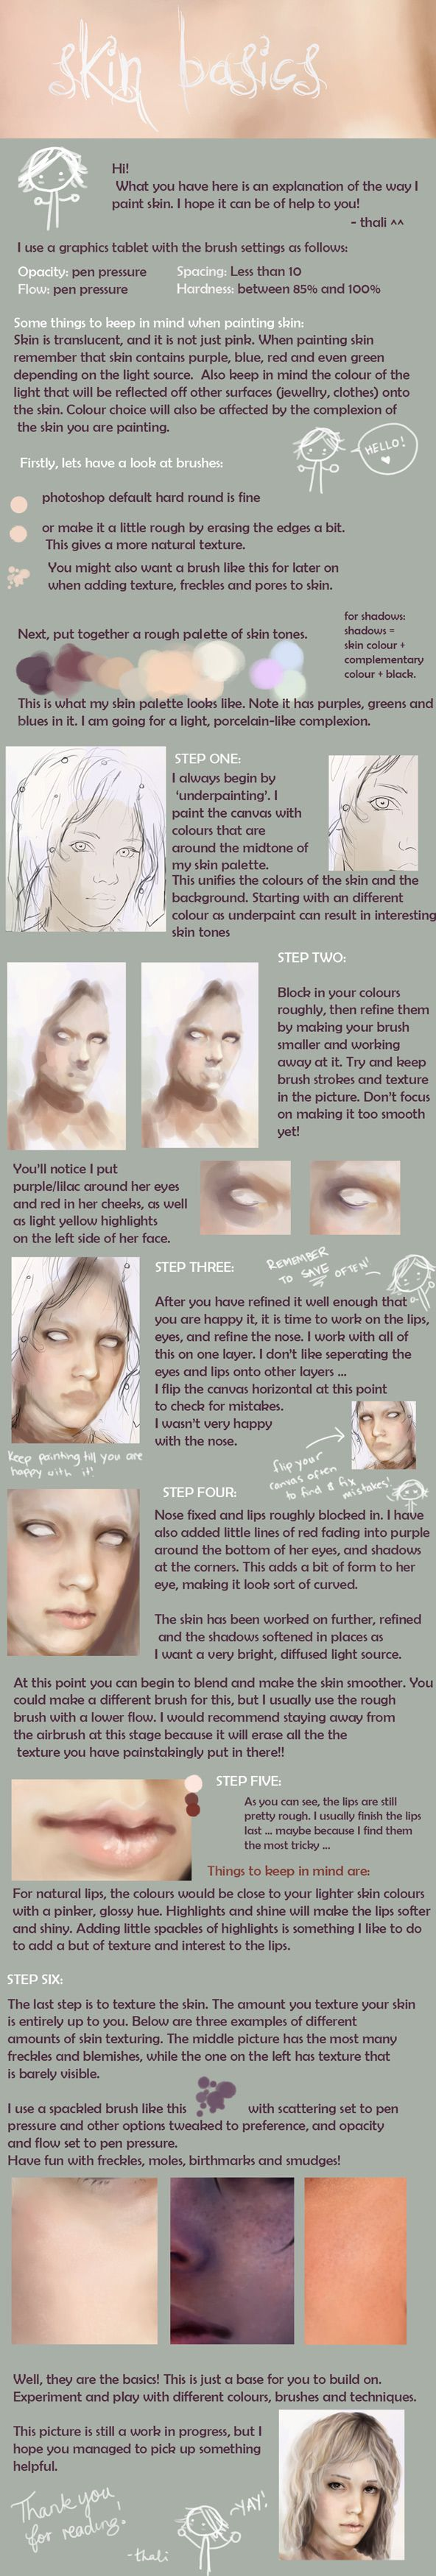 Basics Of Character Design : Best images about character anatomy skin on